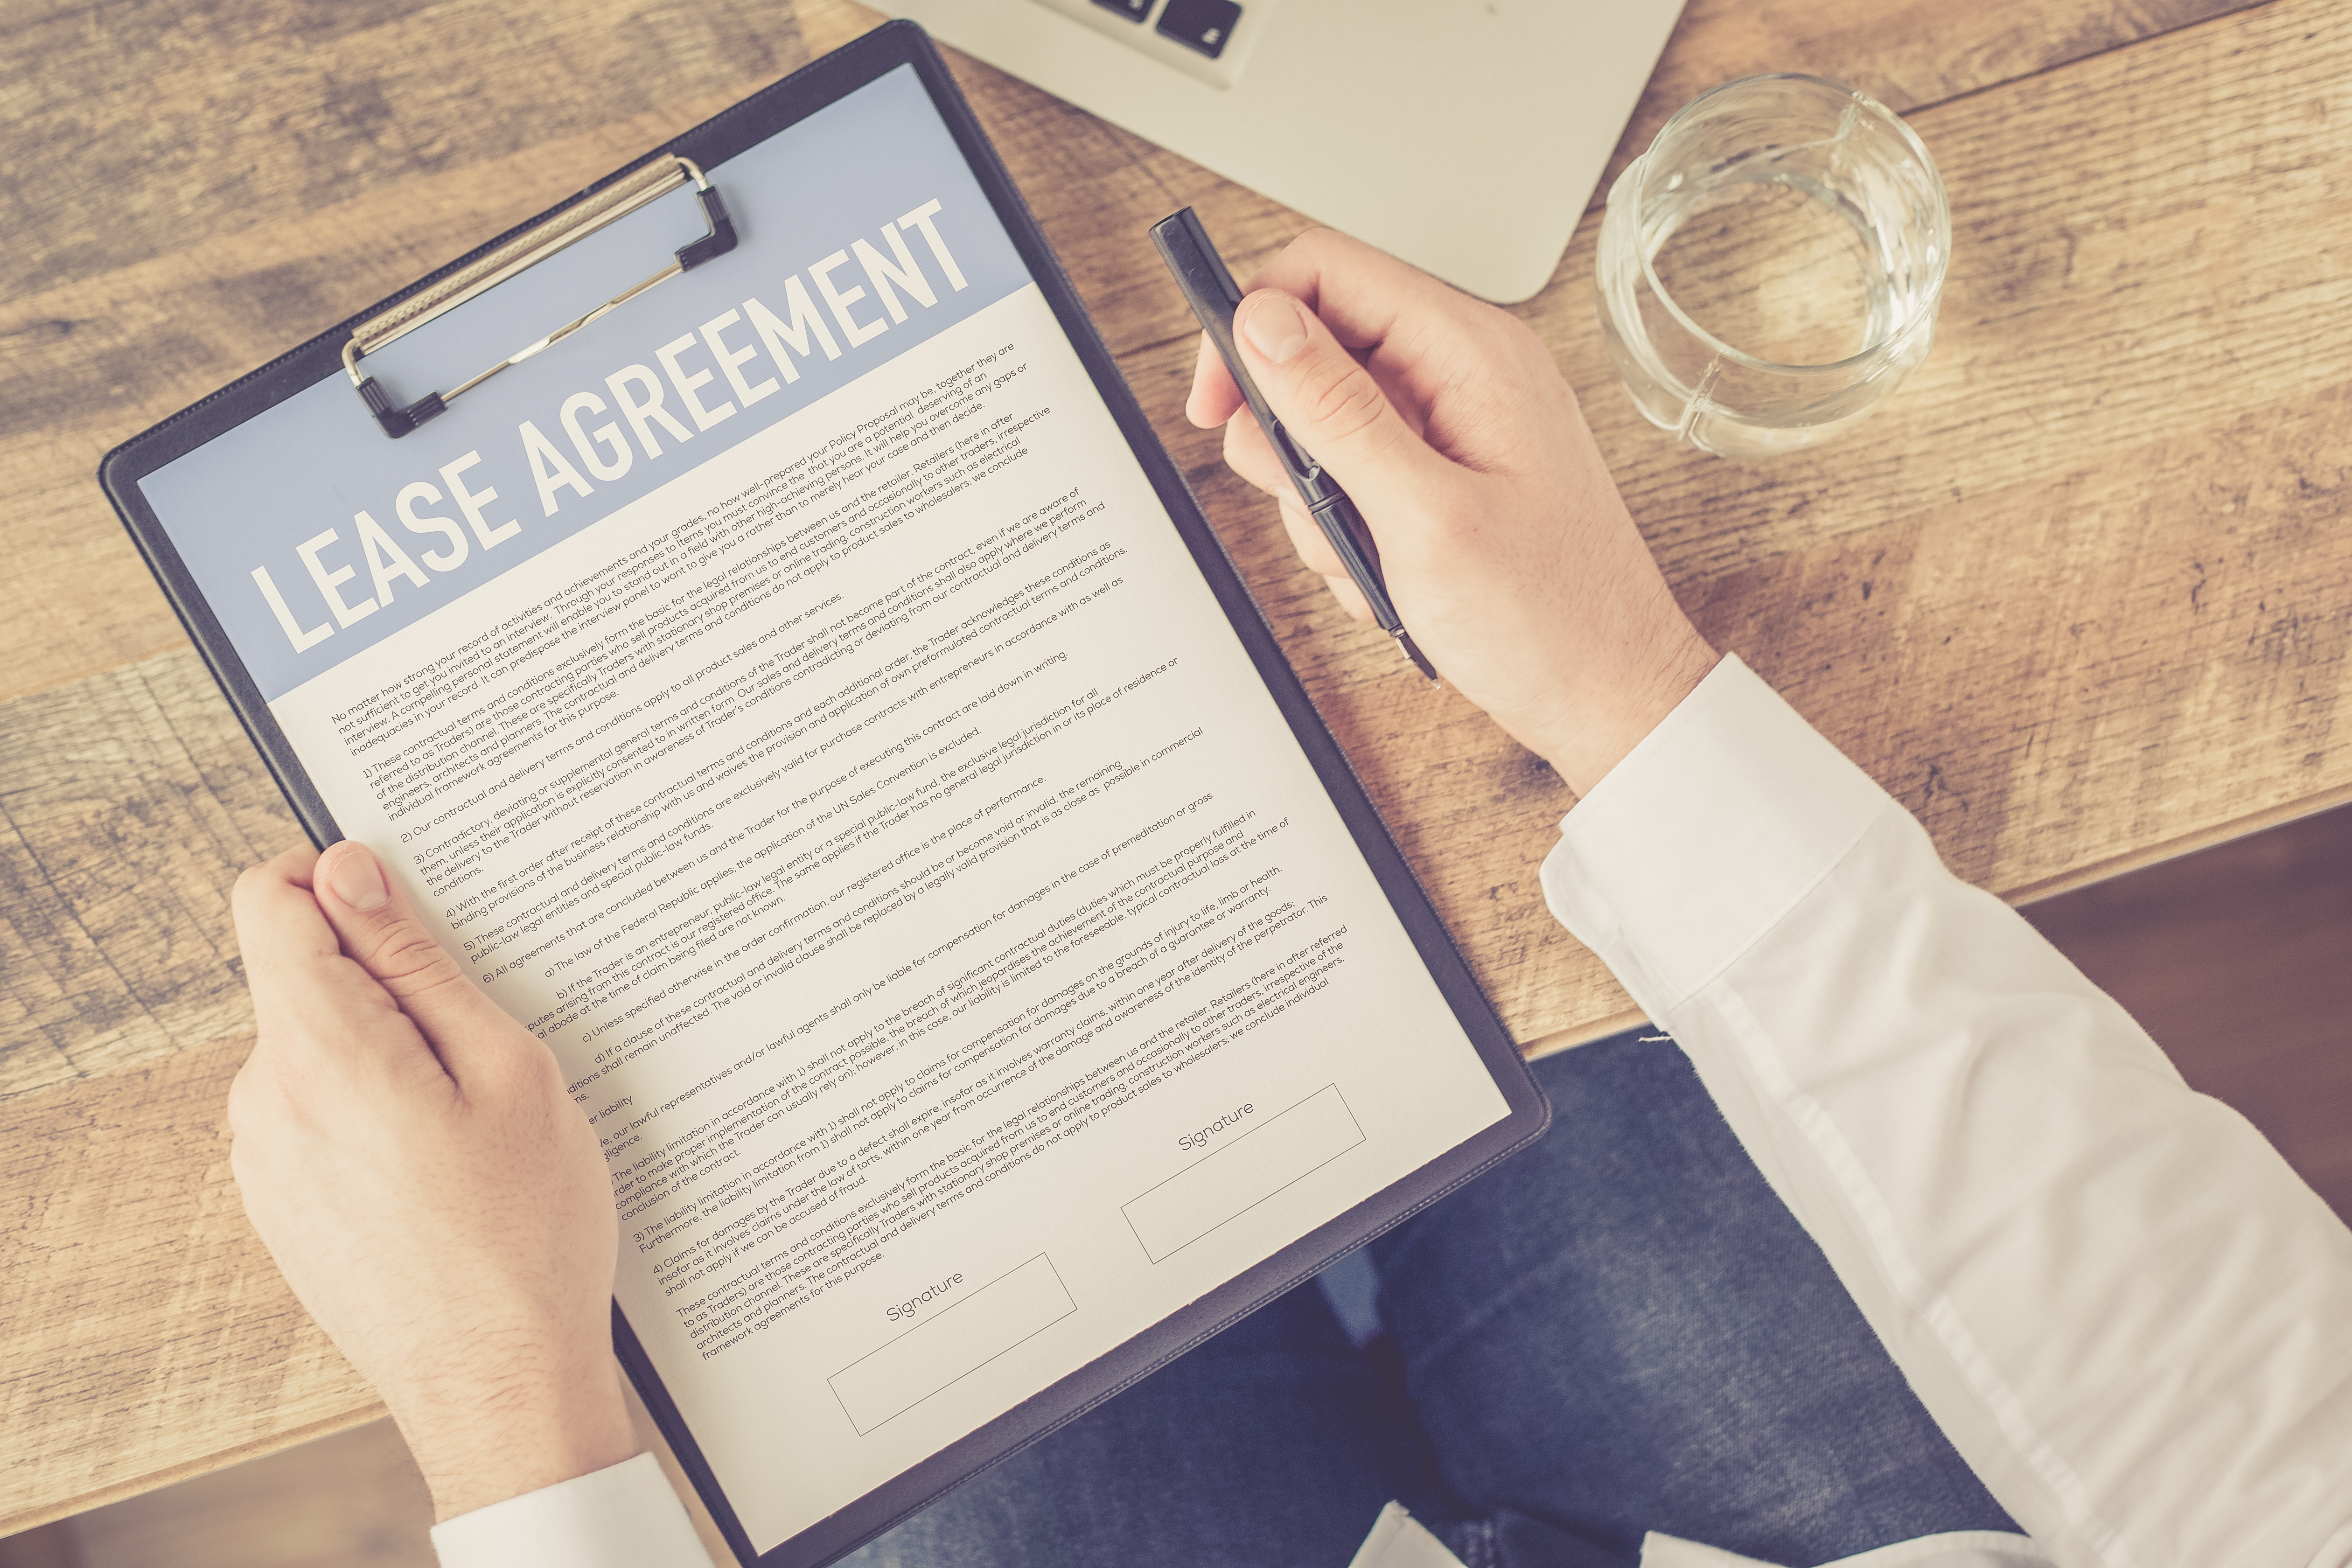 How to Evict Tenants Without a Contract & California Laws